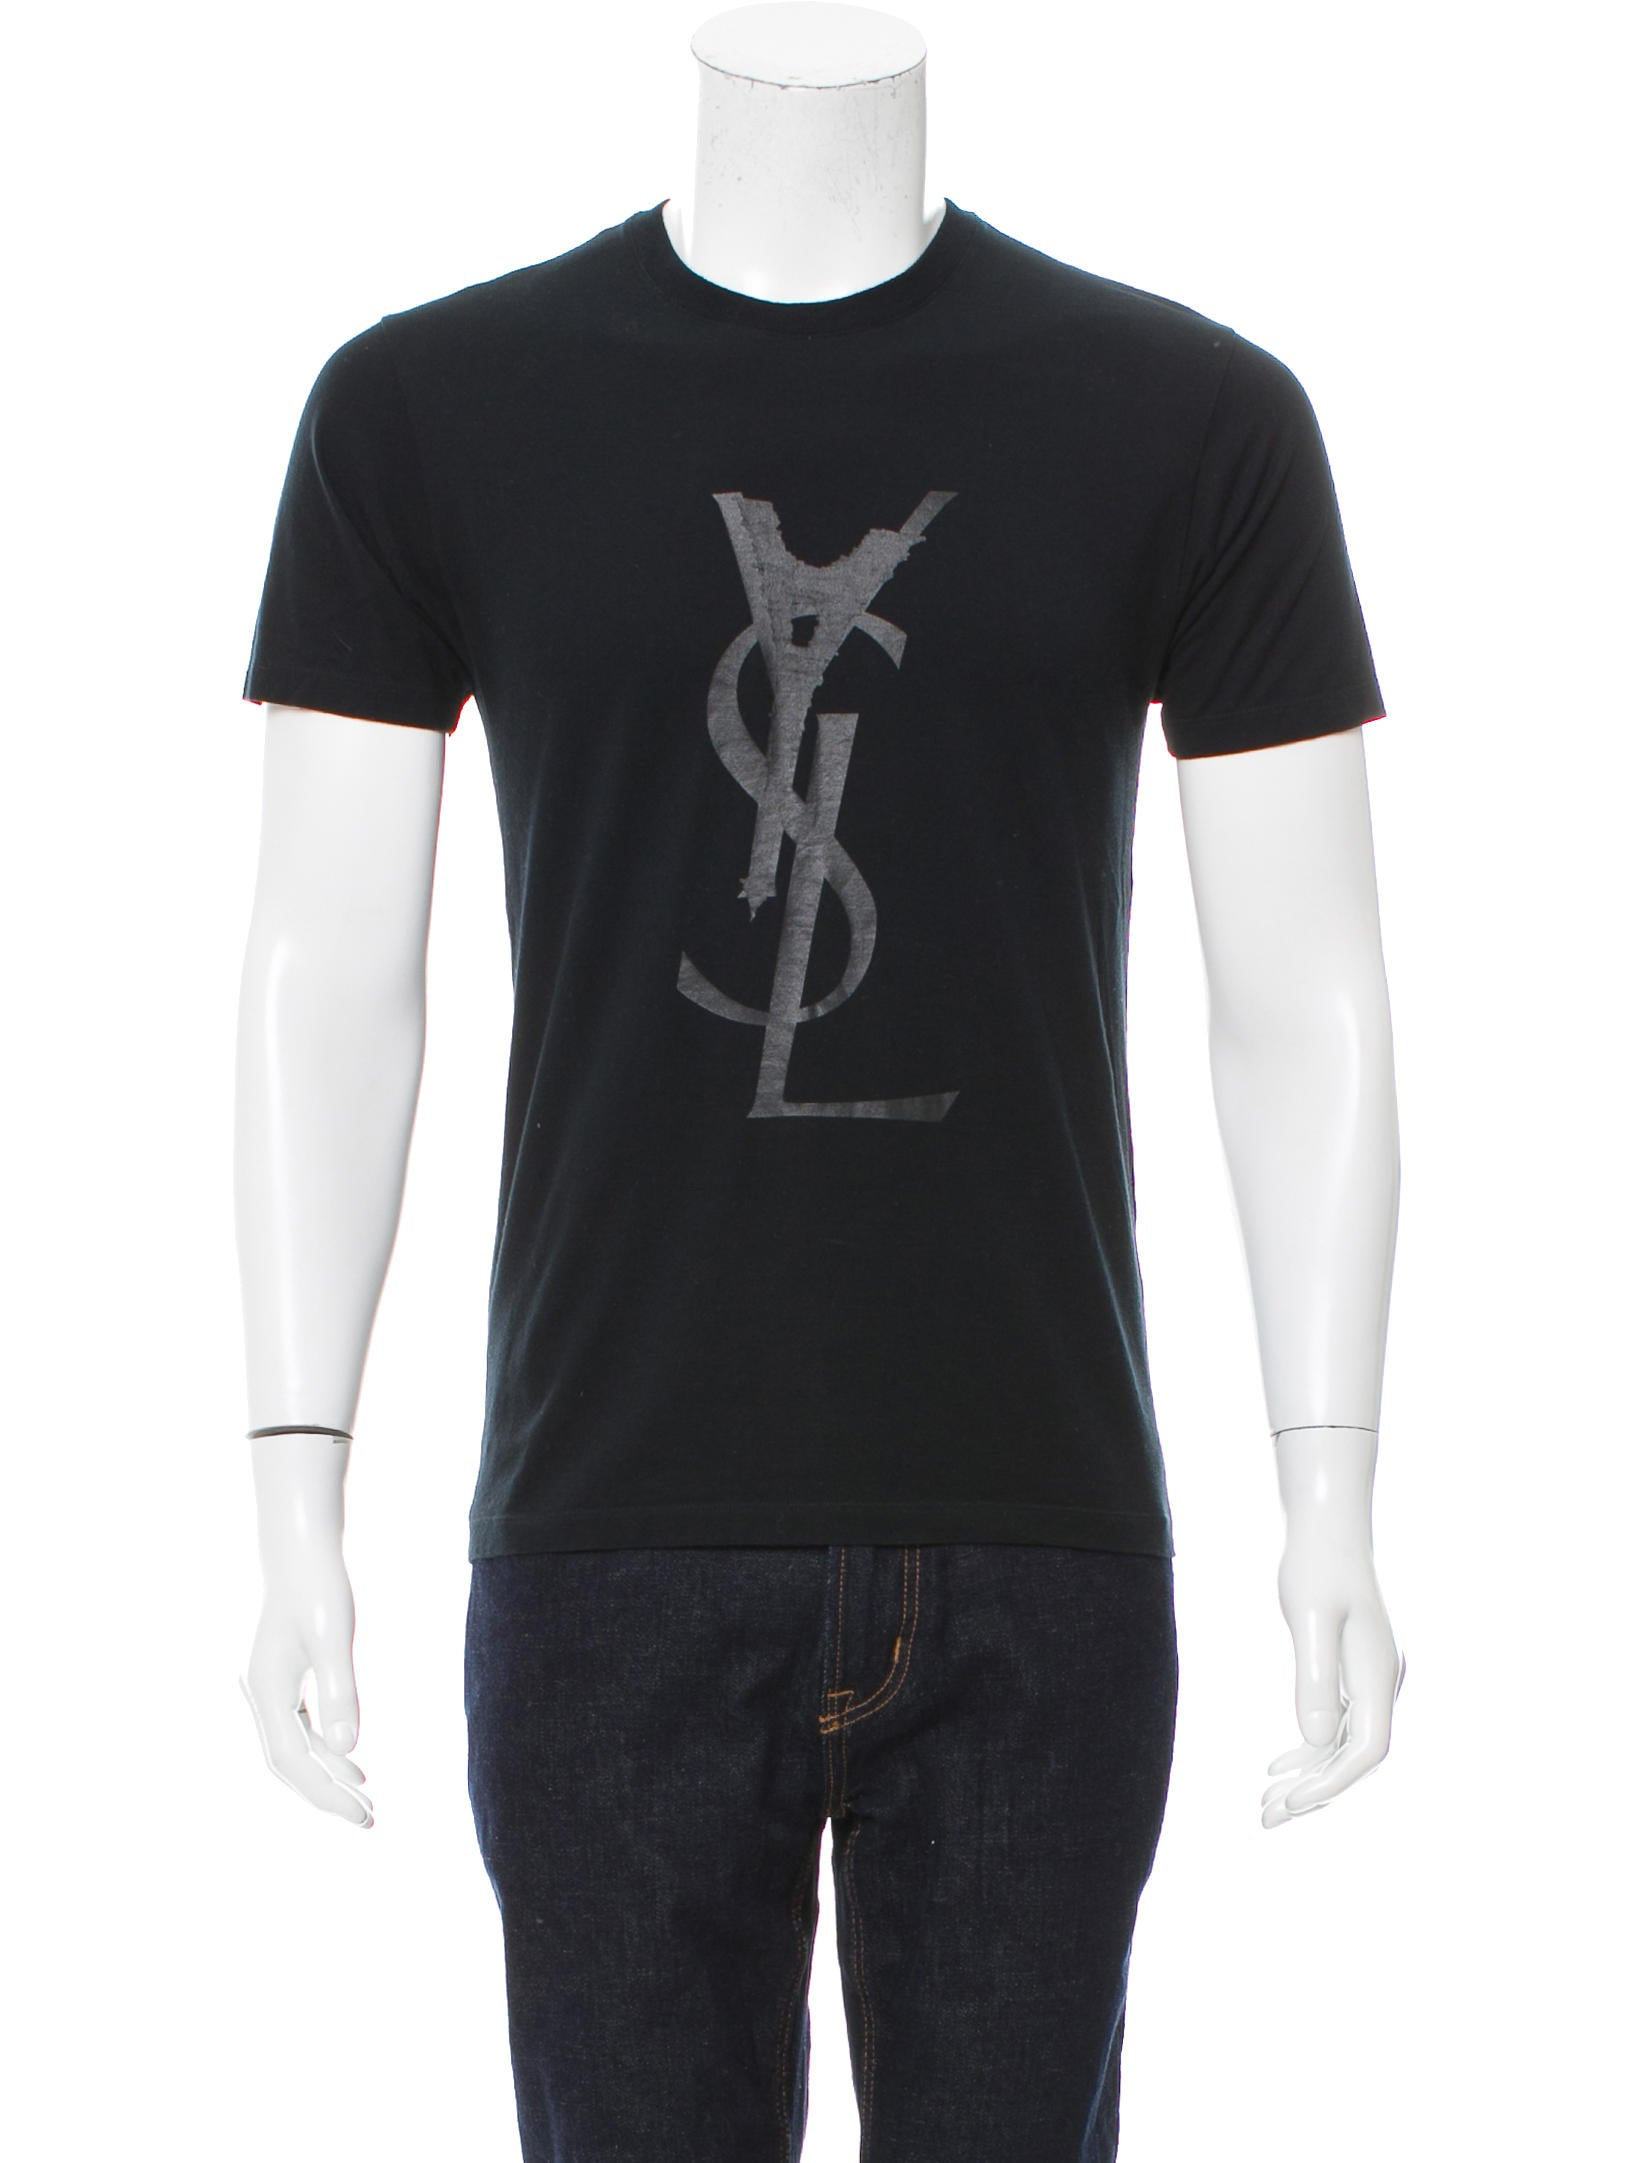 yves saint laurent crew neck logo t shirt clothing yve64393 the realreal. Black Bedroom Furniture Sets. Home Design Ideas